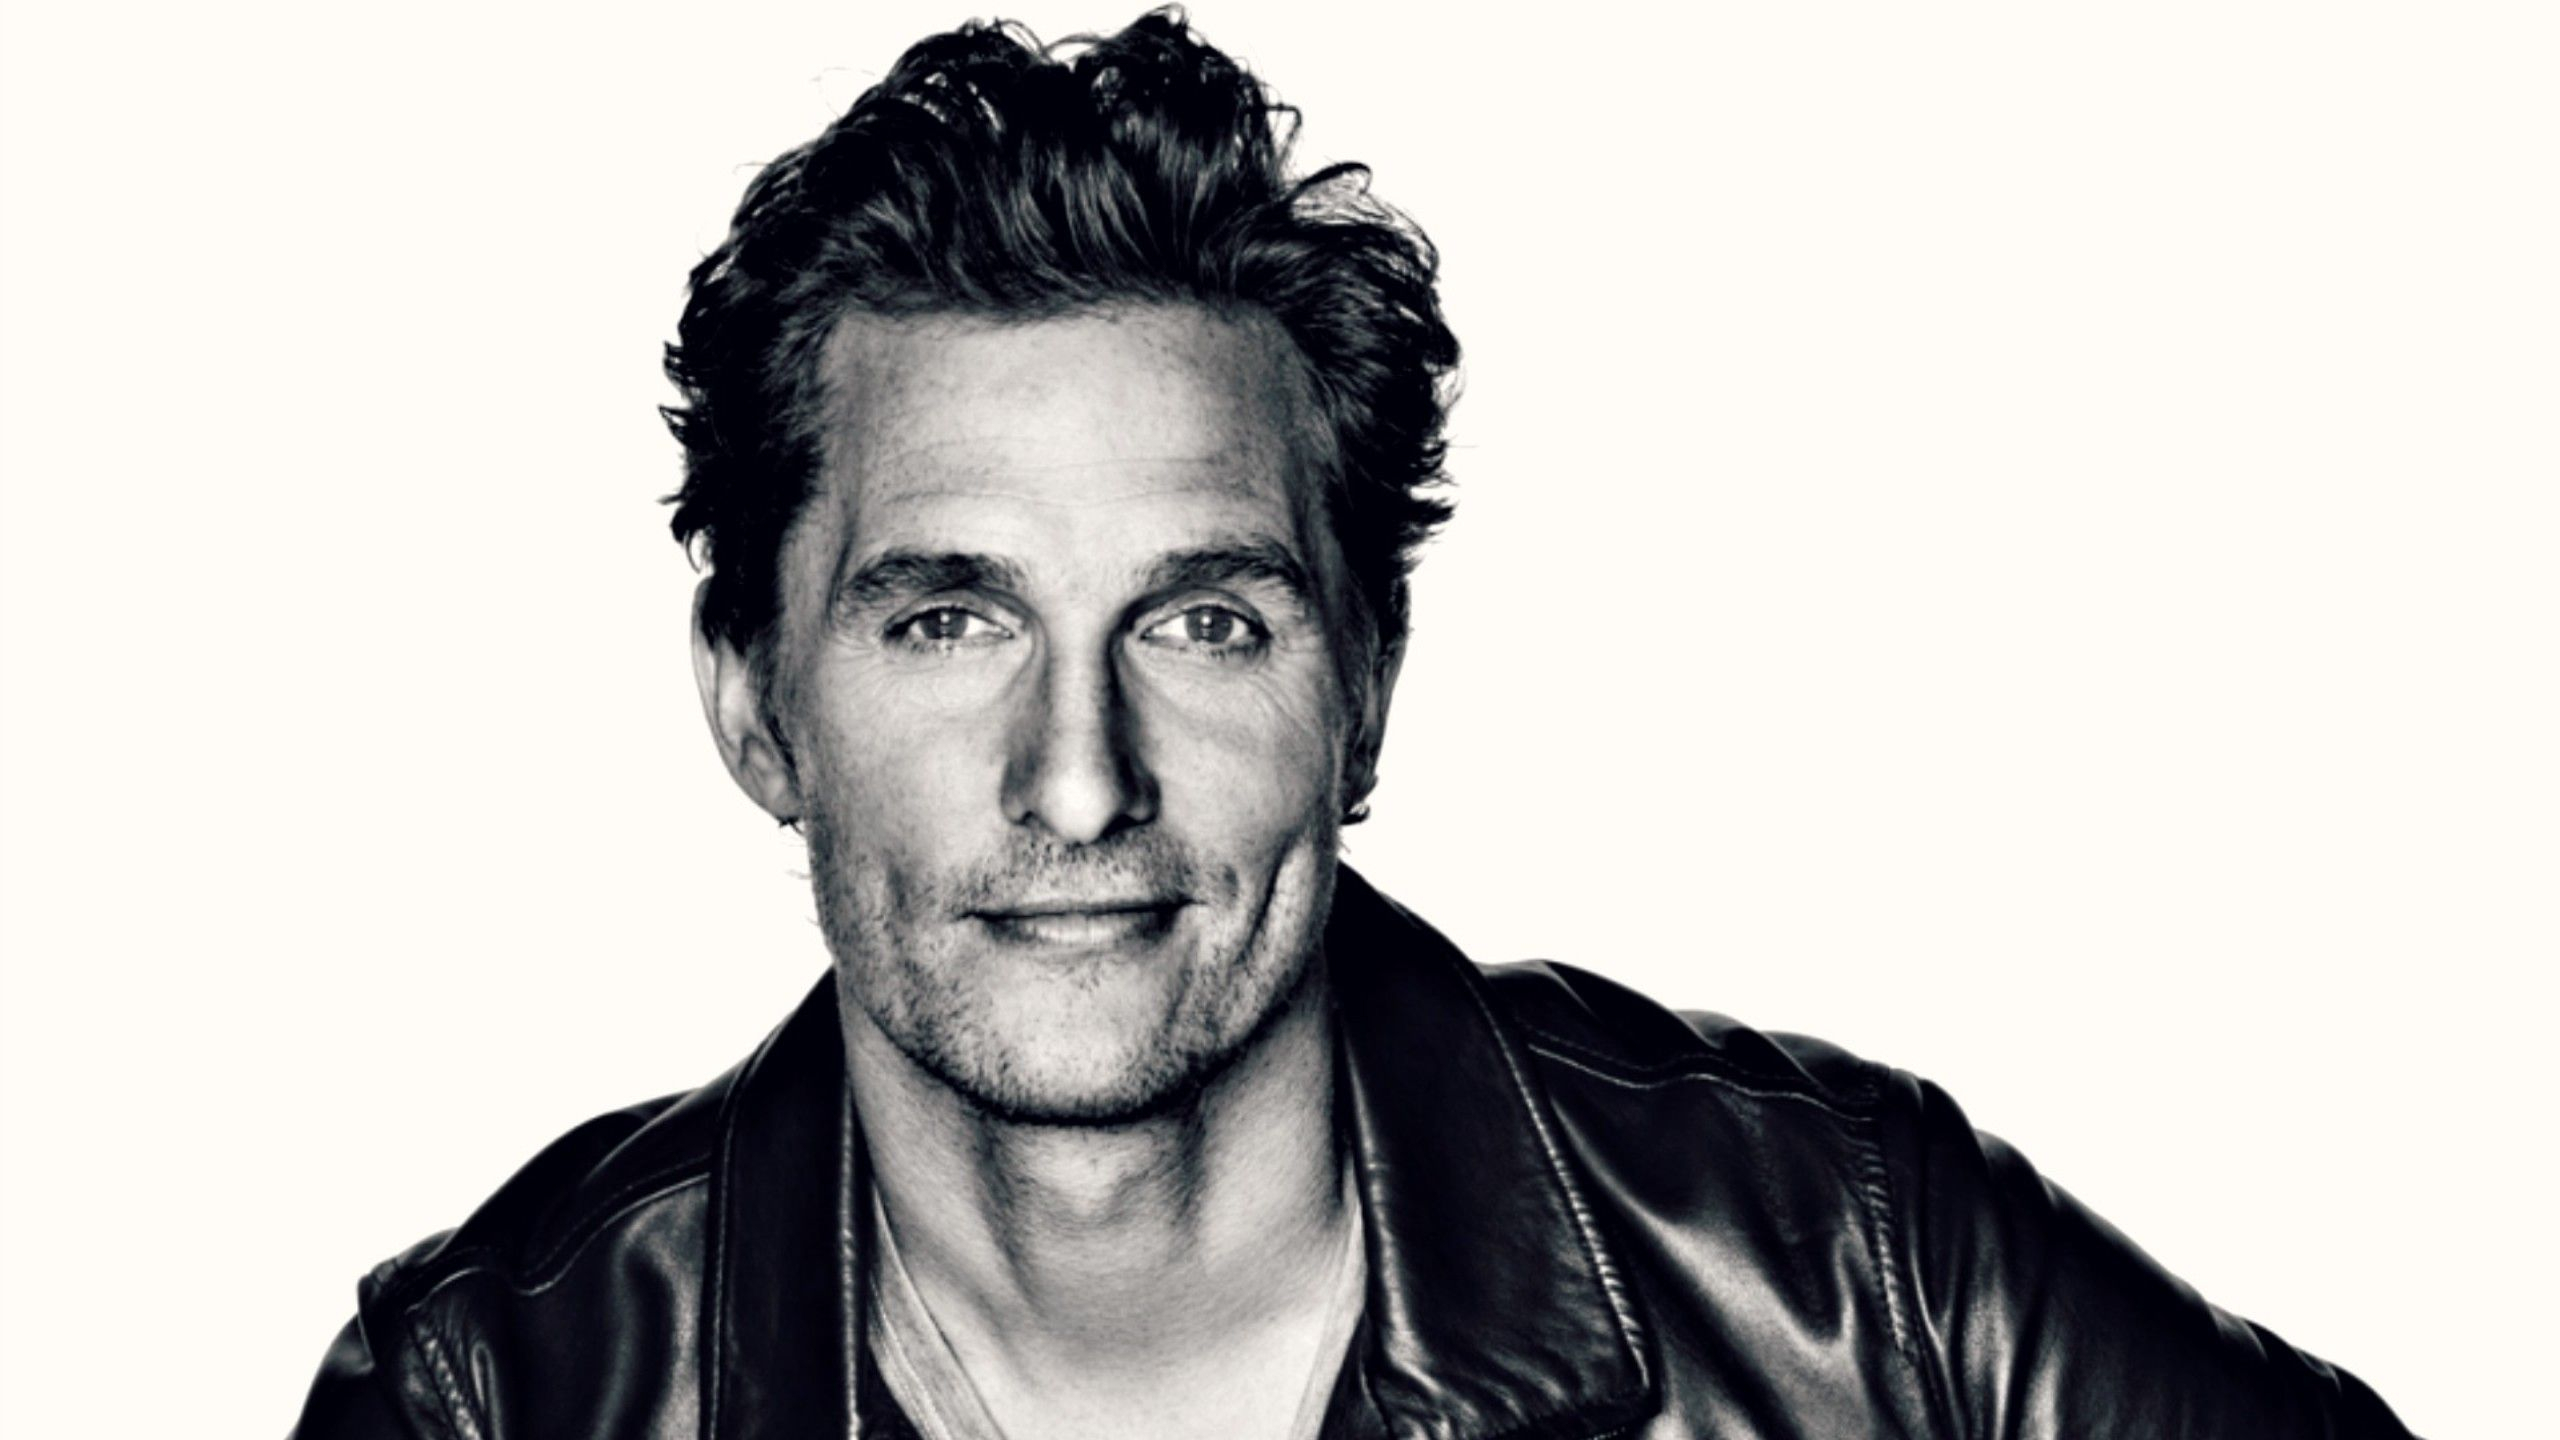 matthew mcconaughey wallpapers - wallpaper cave